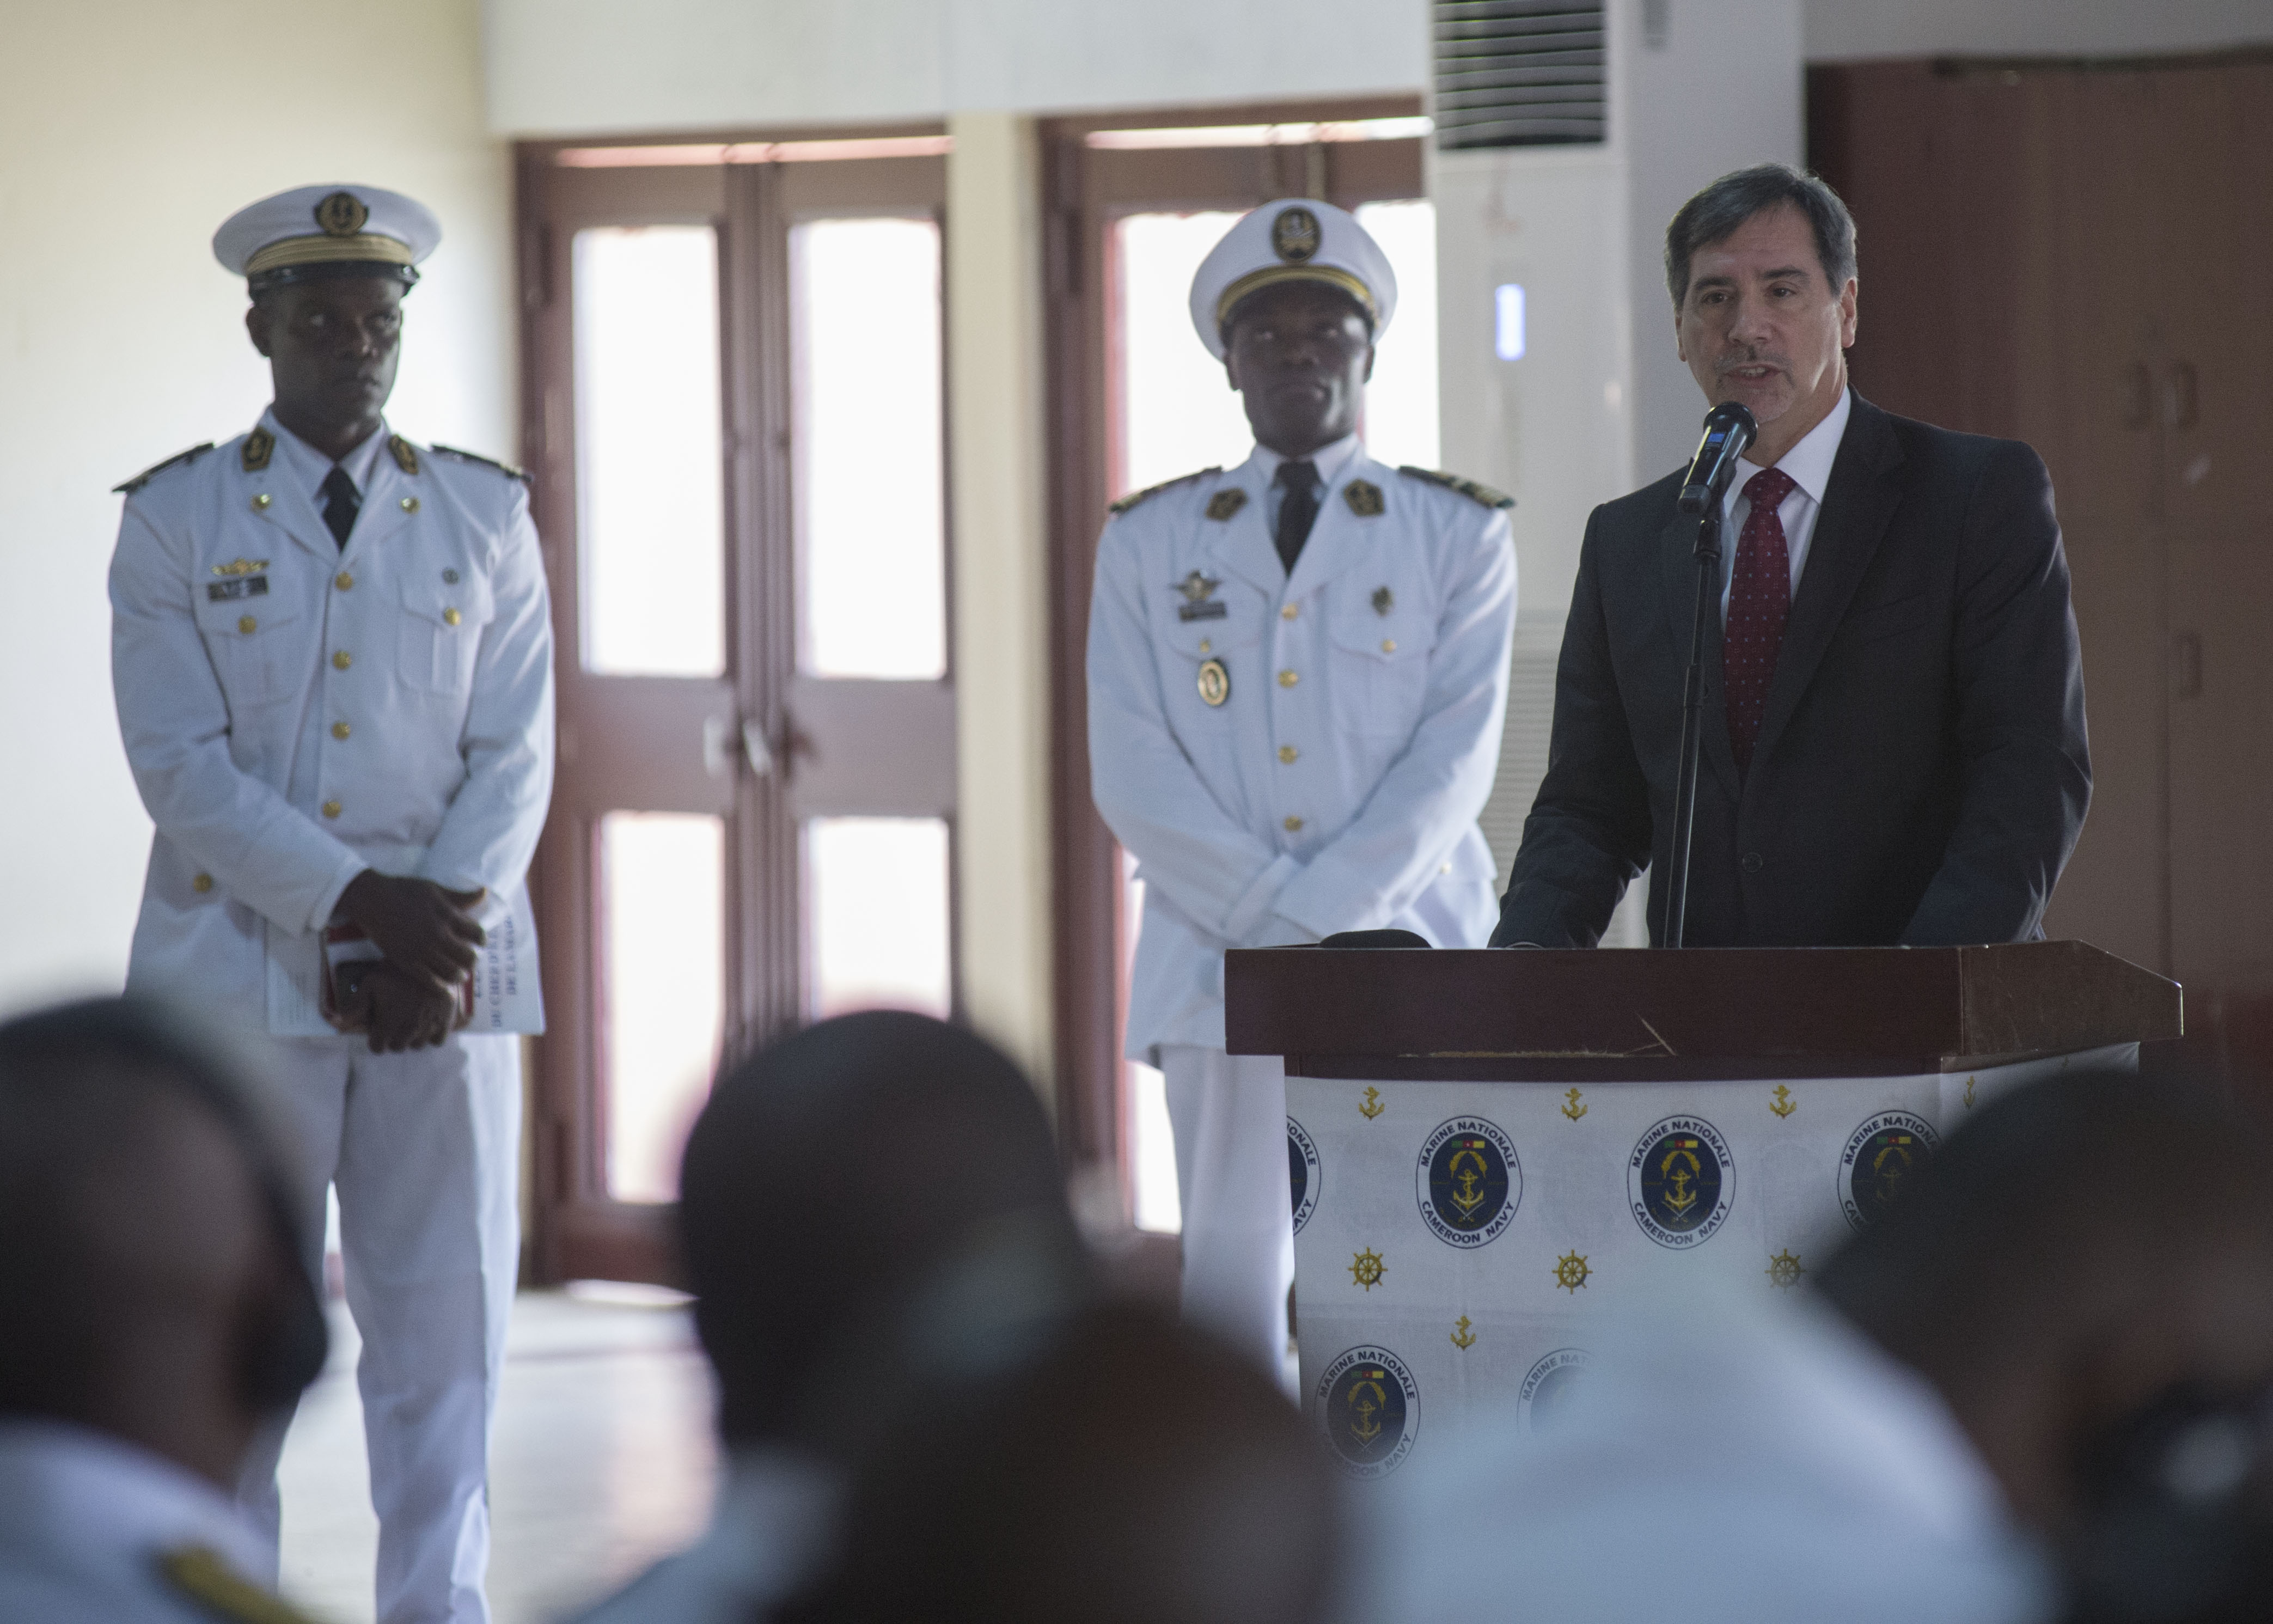 160325-N-QF605-118 DOUALA, Cameroon (March 25, 2016) - U.S. Ambassador to Cameroon, Michael S. Hoza, speaks during the Exercise Obangame/Saharan Express 2016 closing ceremony in Douala, Cameroon, March 25, 2016. Obangame/Saharan Express, one of three African regional express series exercises facilitated by U.S. Naval Forces Europe-Africa/U.S. 6th Fleet, seeks to increase regional cooperation, maritime domain awareness, information sharing practices and improve interoperability among participating forces in order to enhance maritime security and regional economic stability. (U.S. Navy photo by Mass Communication Specialist 1st Class Amanda Dunford/Released)